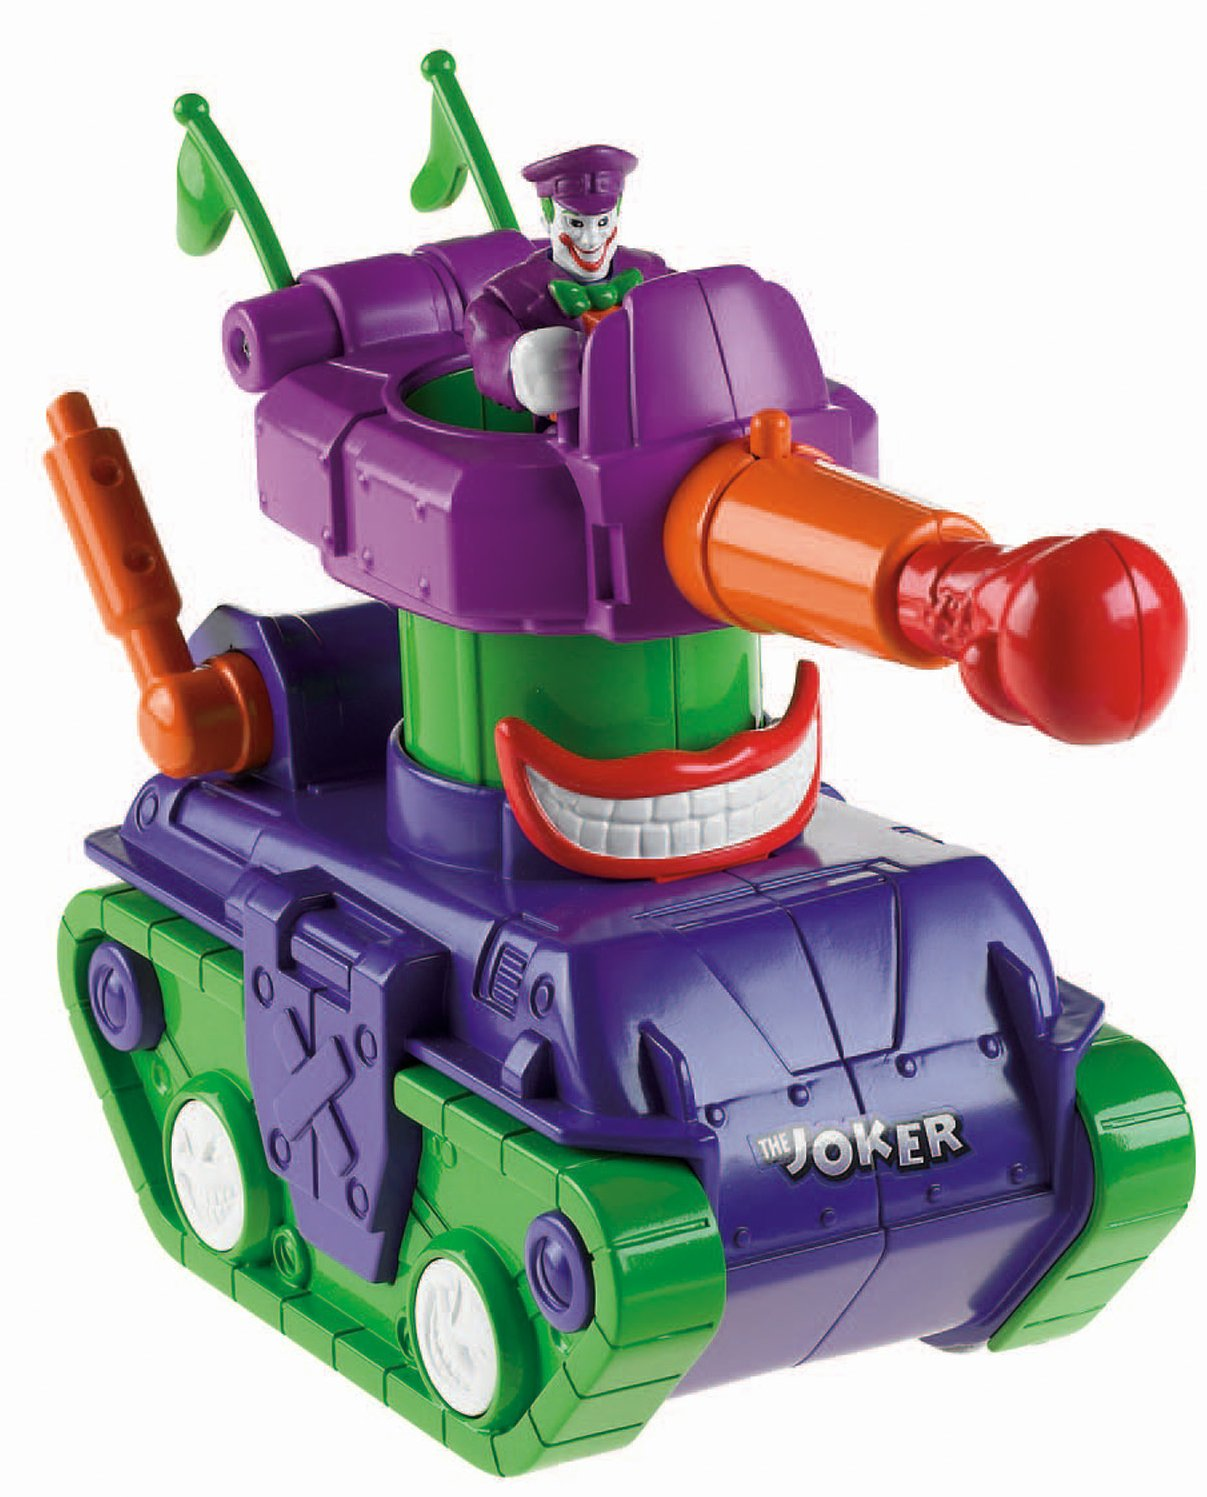 Fisher-Price Imaginext DC Super Friends, Joker Tank by Fisher-Price (Image #1)